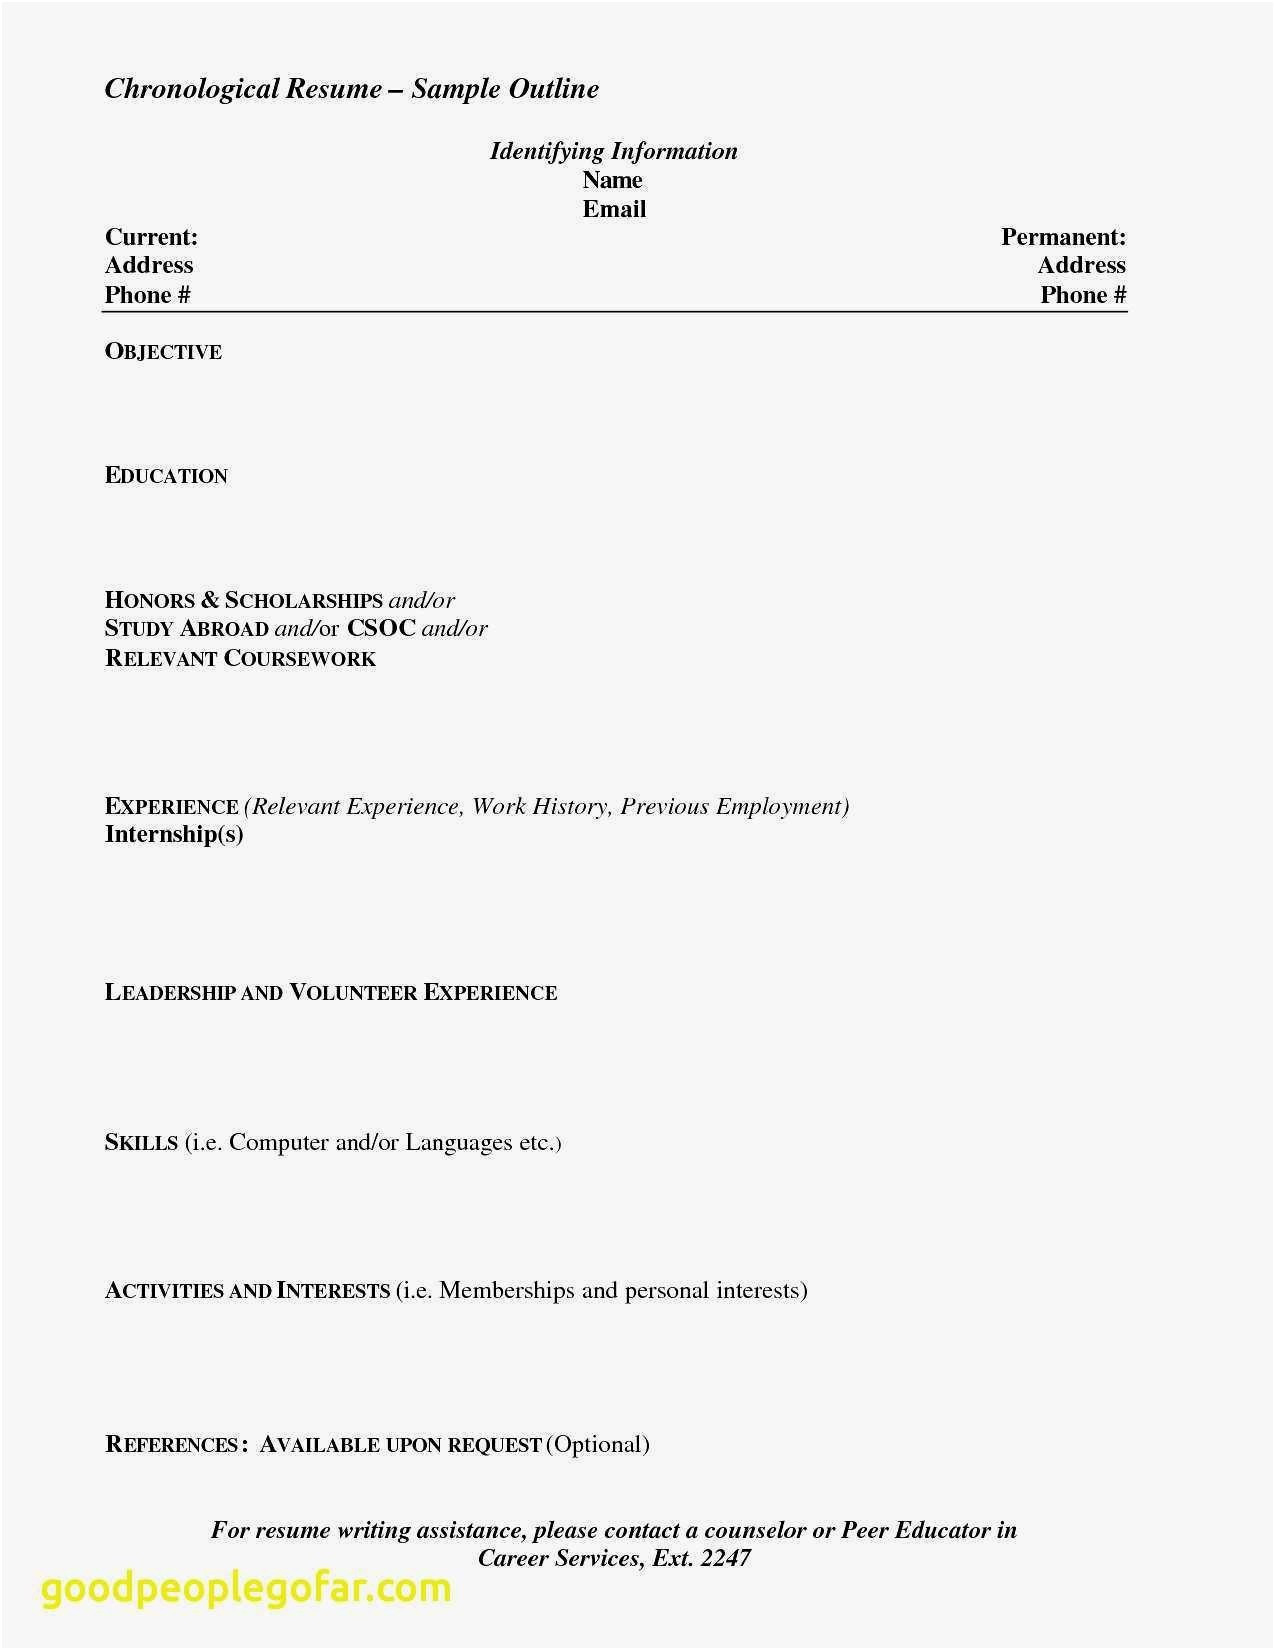 Resume Personal Statement - Good Objective Statement for Resume for Customer Service Free